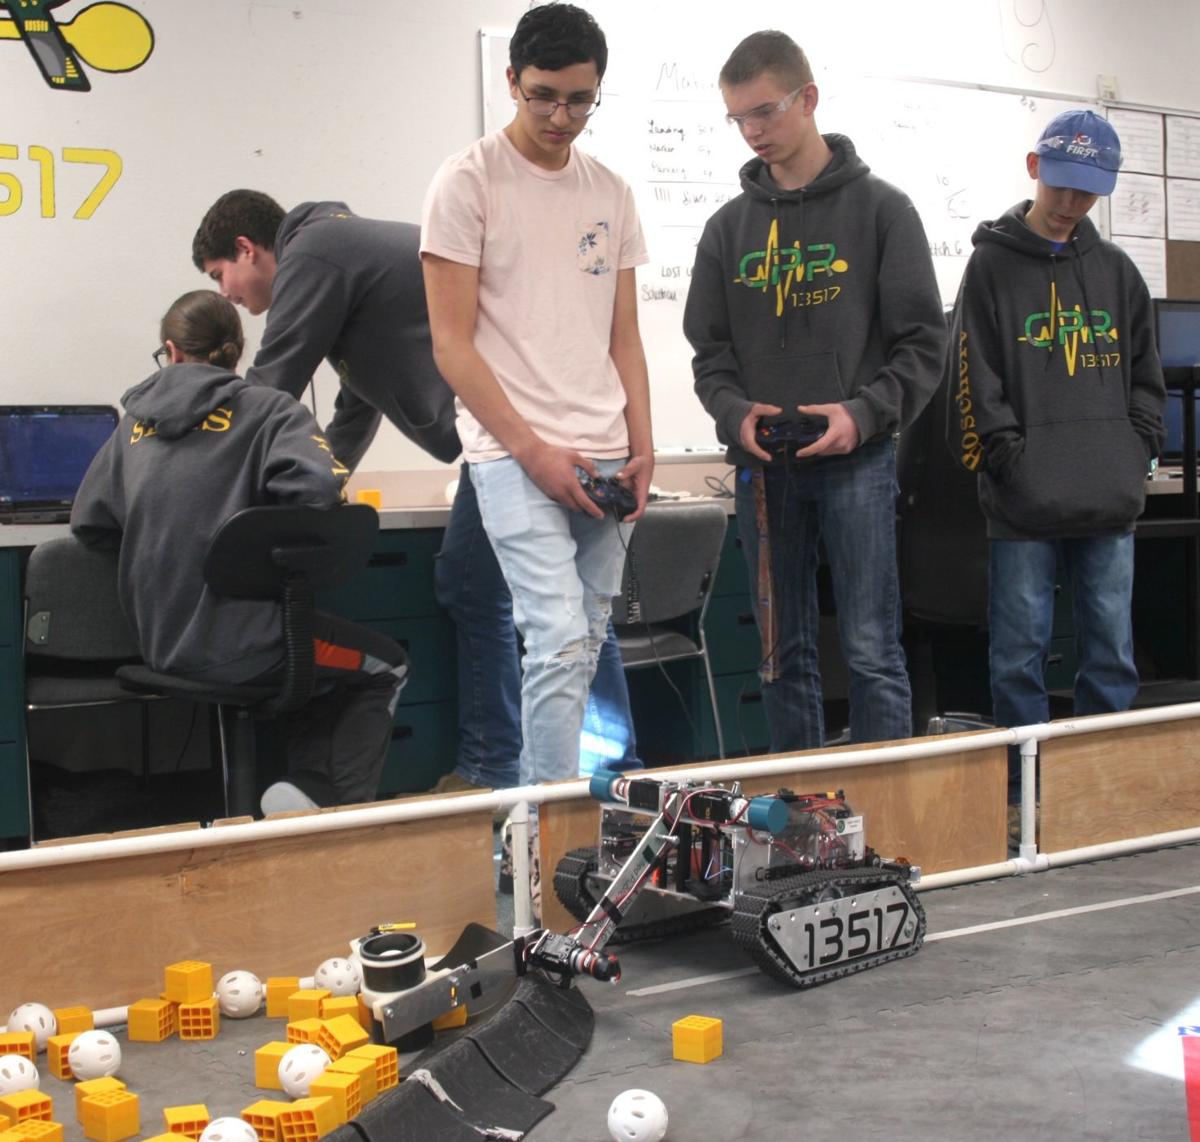 Robots invade - two students control the robot